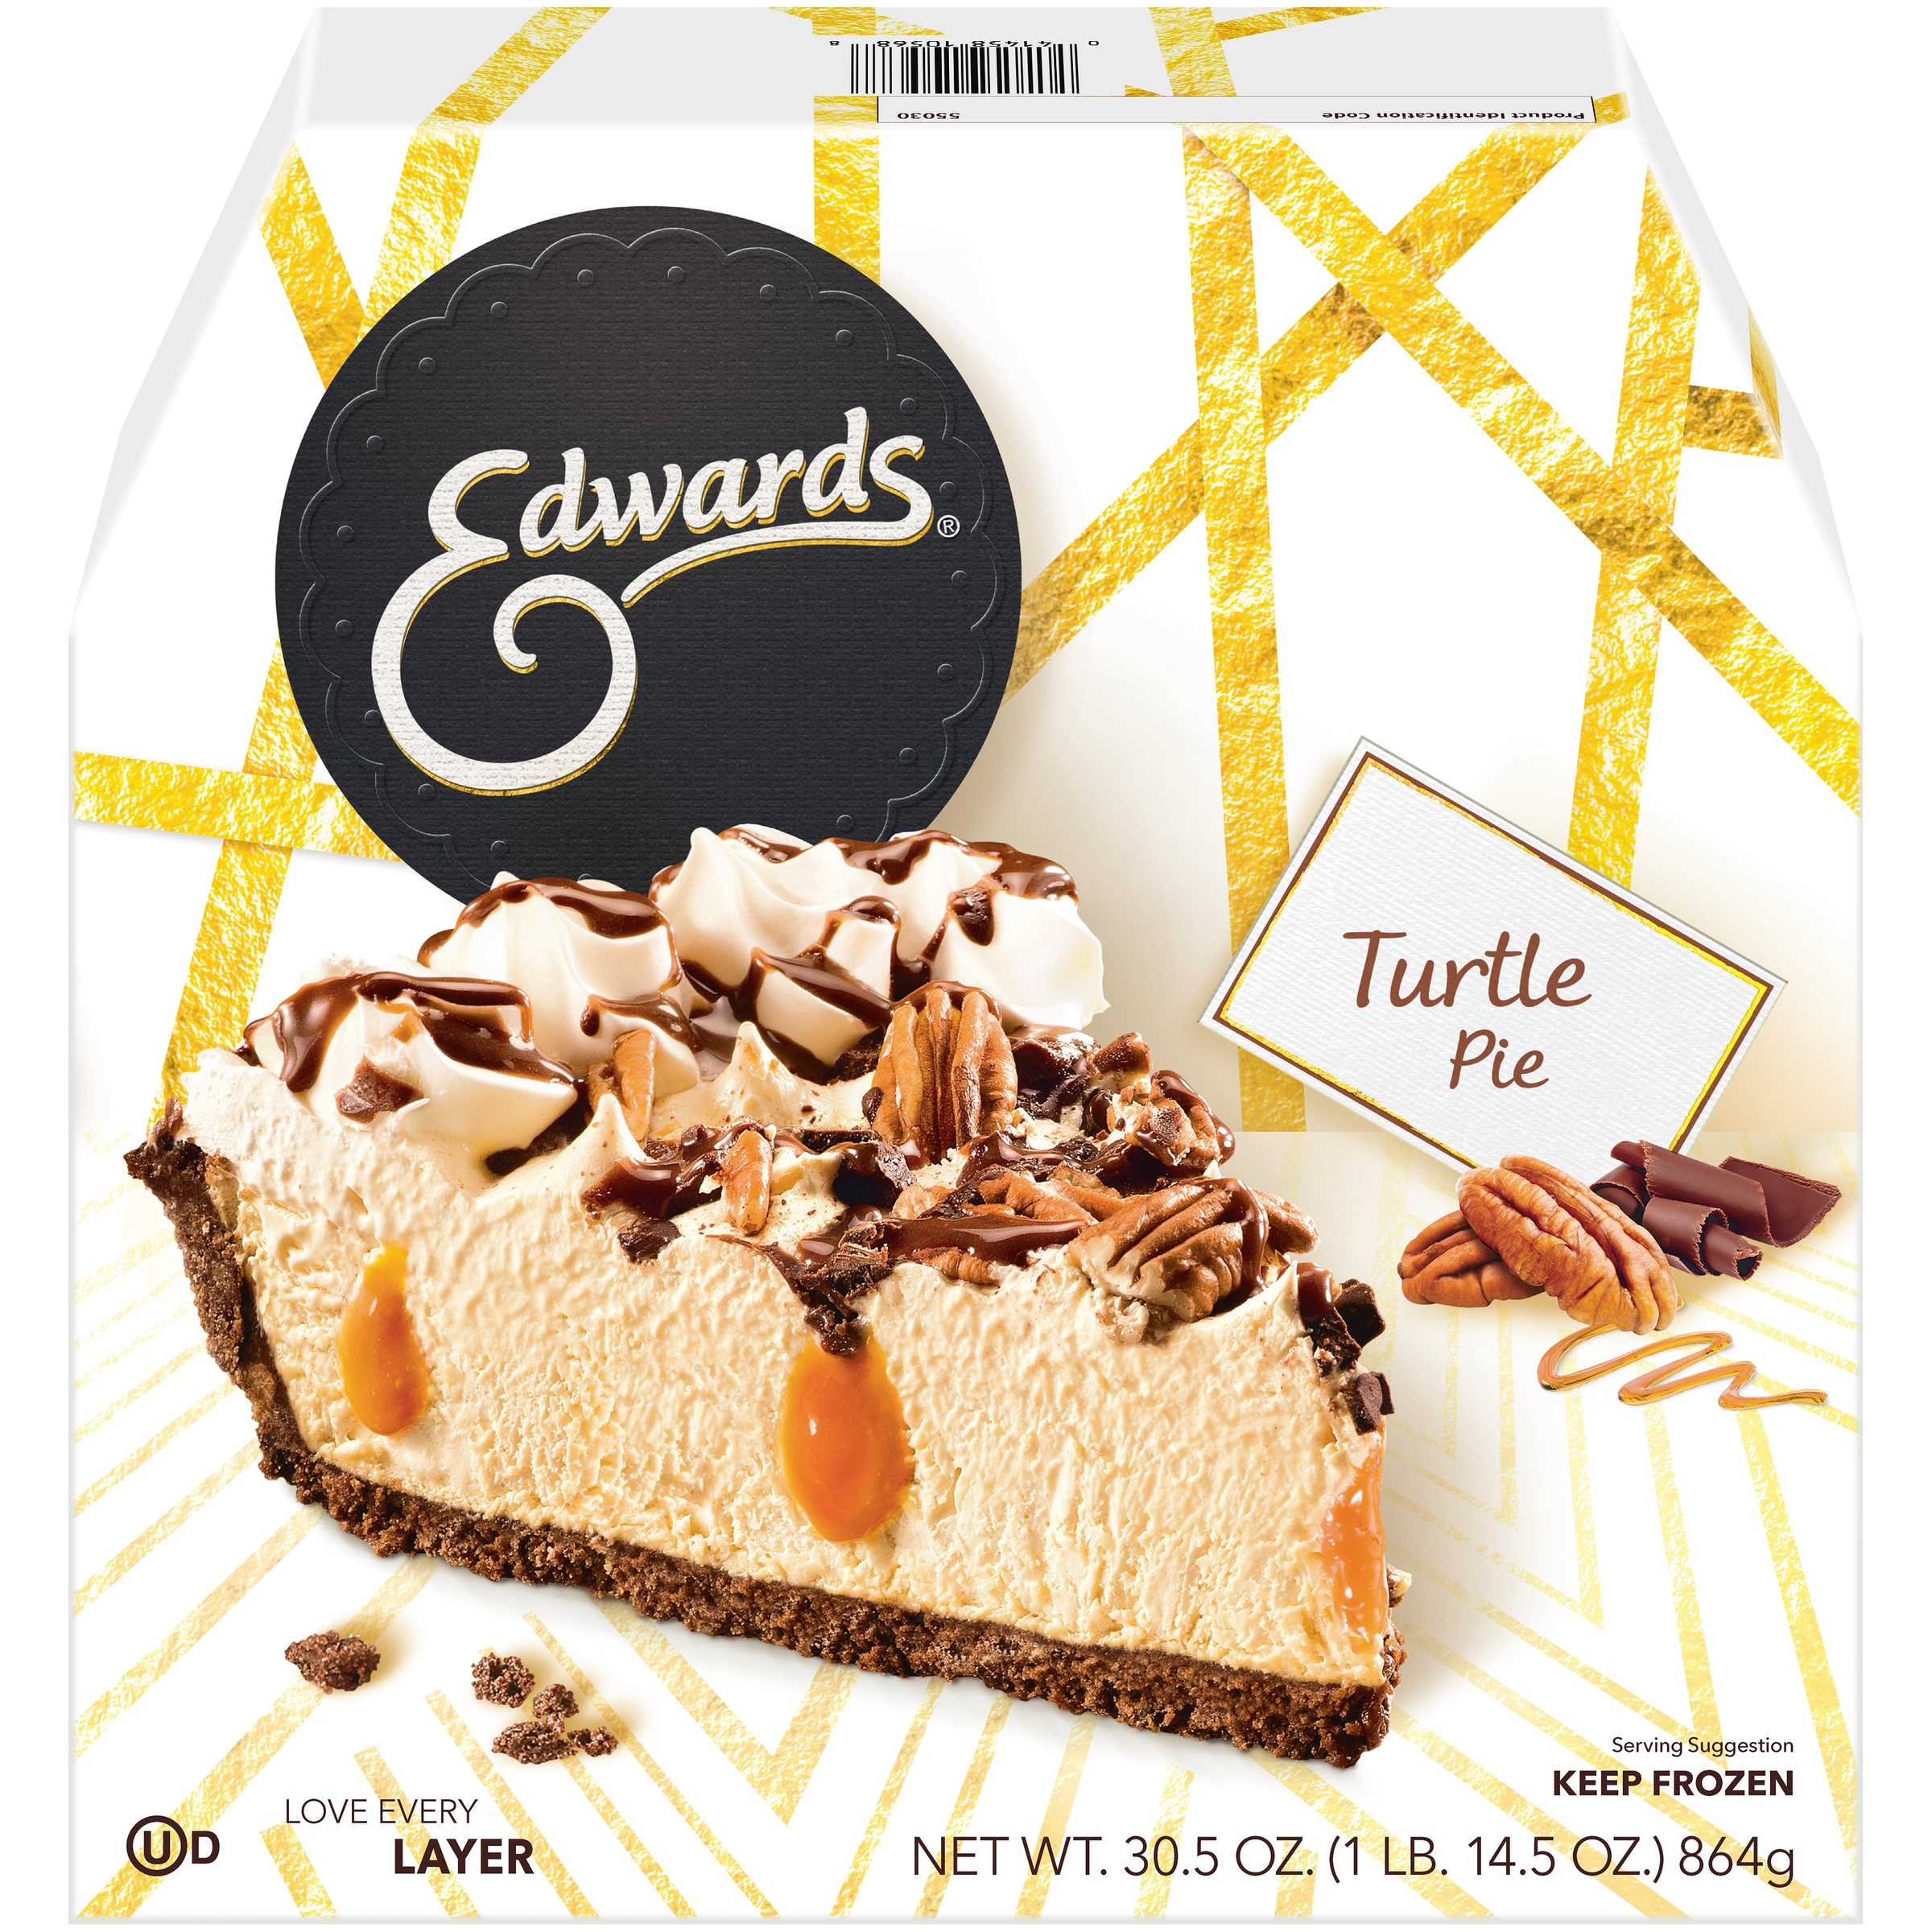 Edwards Turtle Pie 30.5 oz. Box - Walmart.com